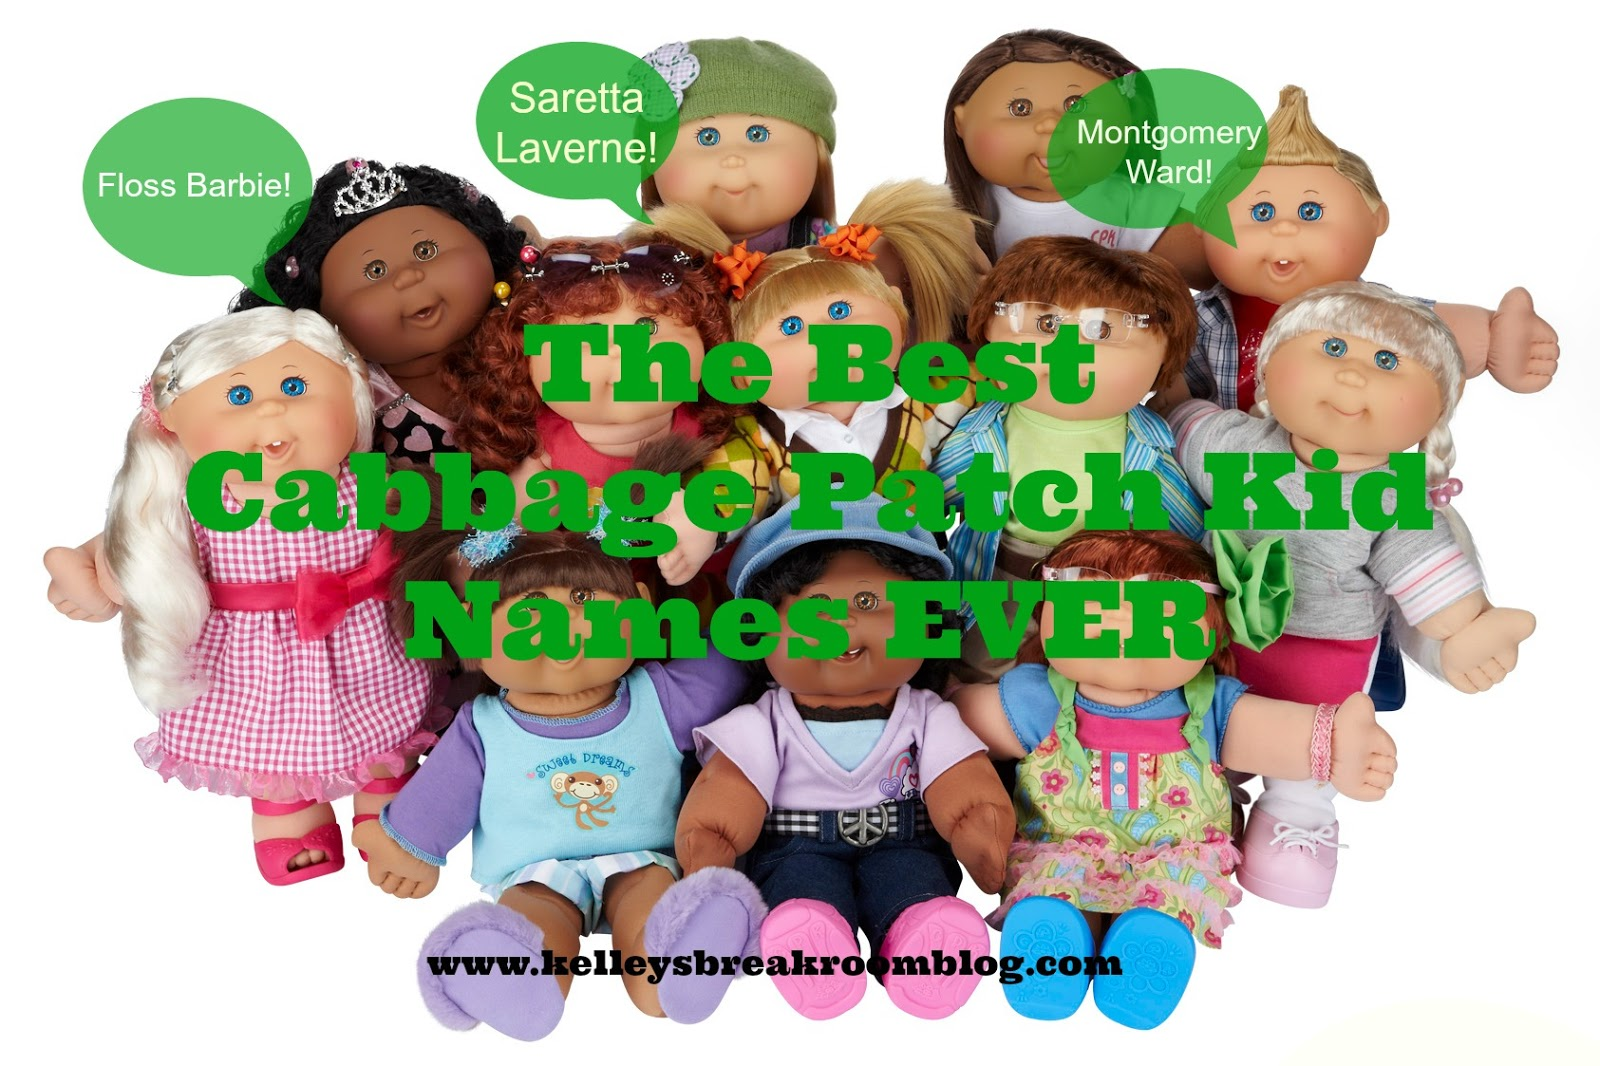 The best cabbage patch kid names ever kelleys break room the best cabbage patch kid names ever aiddatafo Images